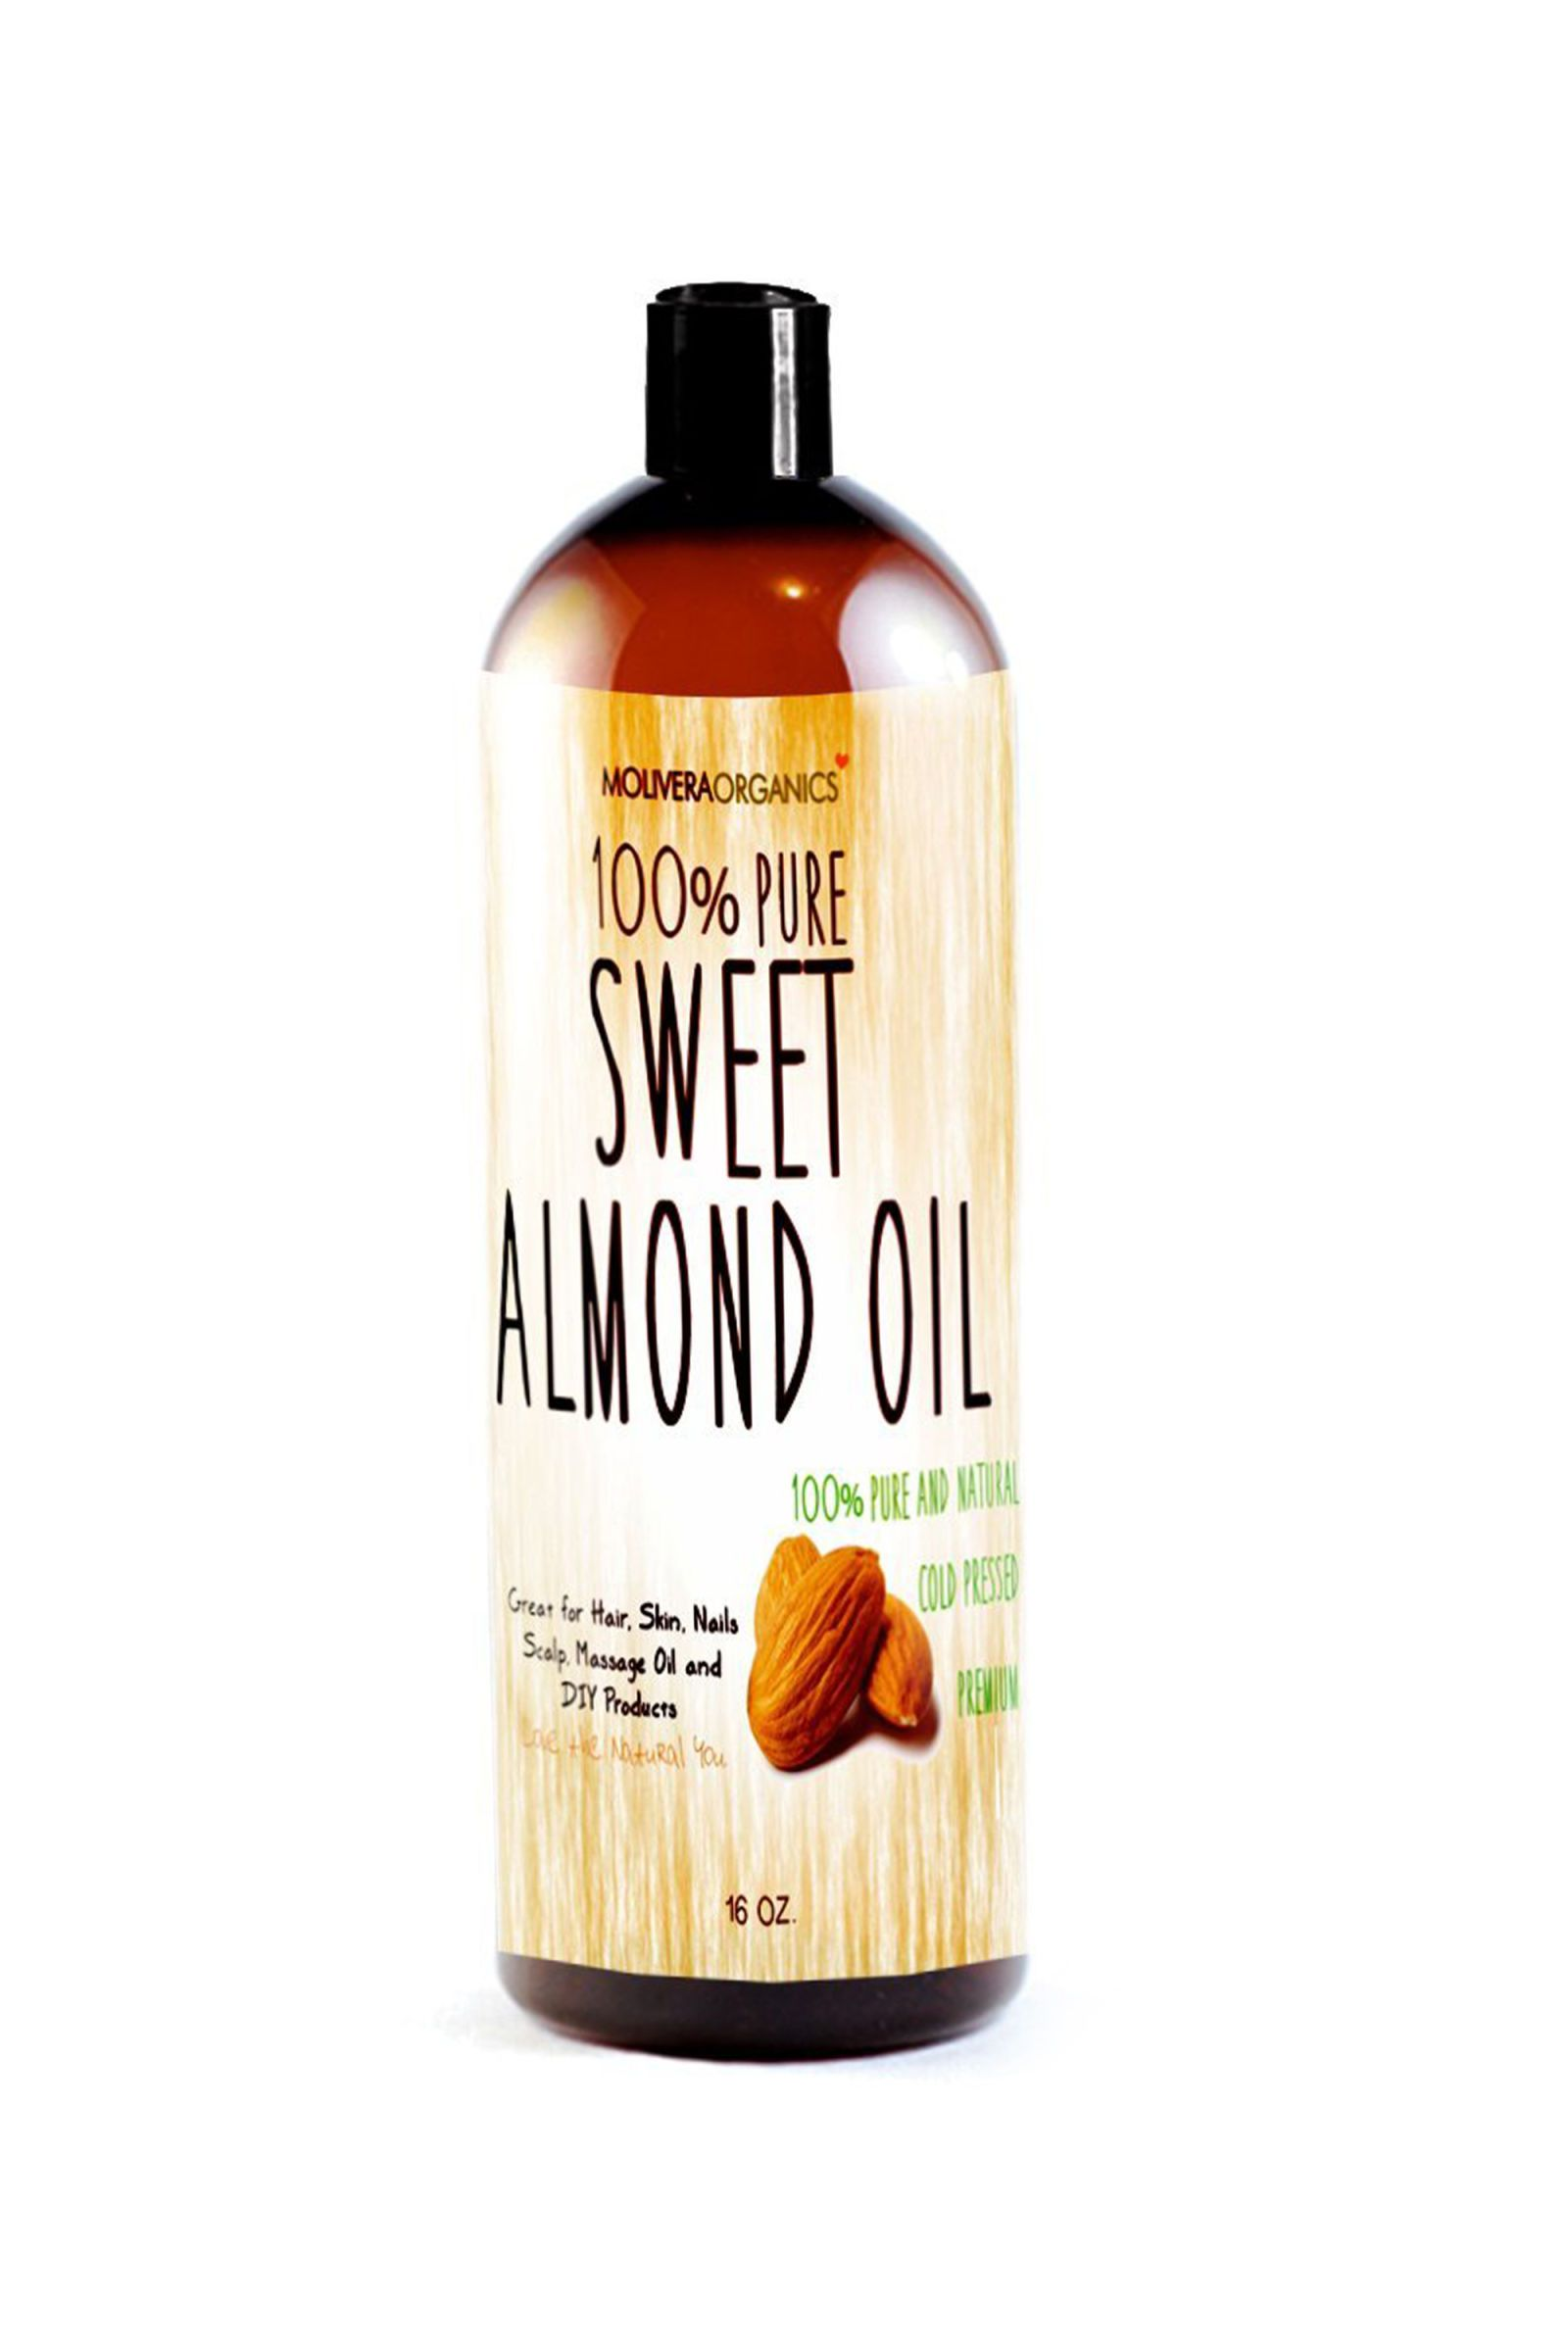 7 StylistApproved Tips for Healthier Hair Sweet almond